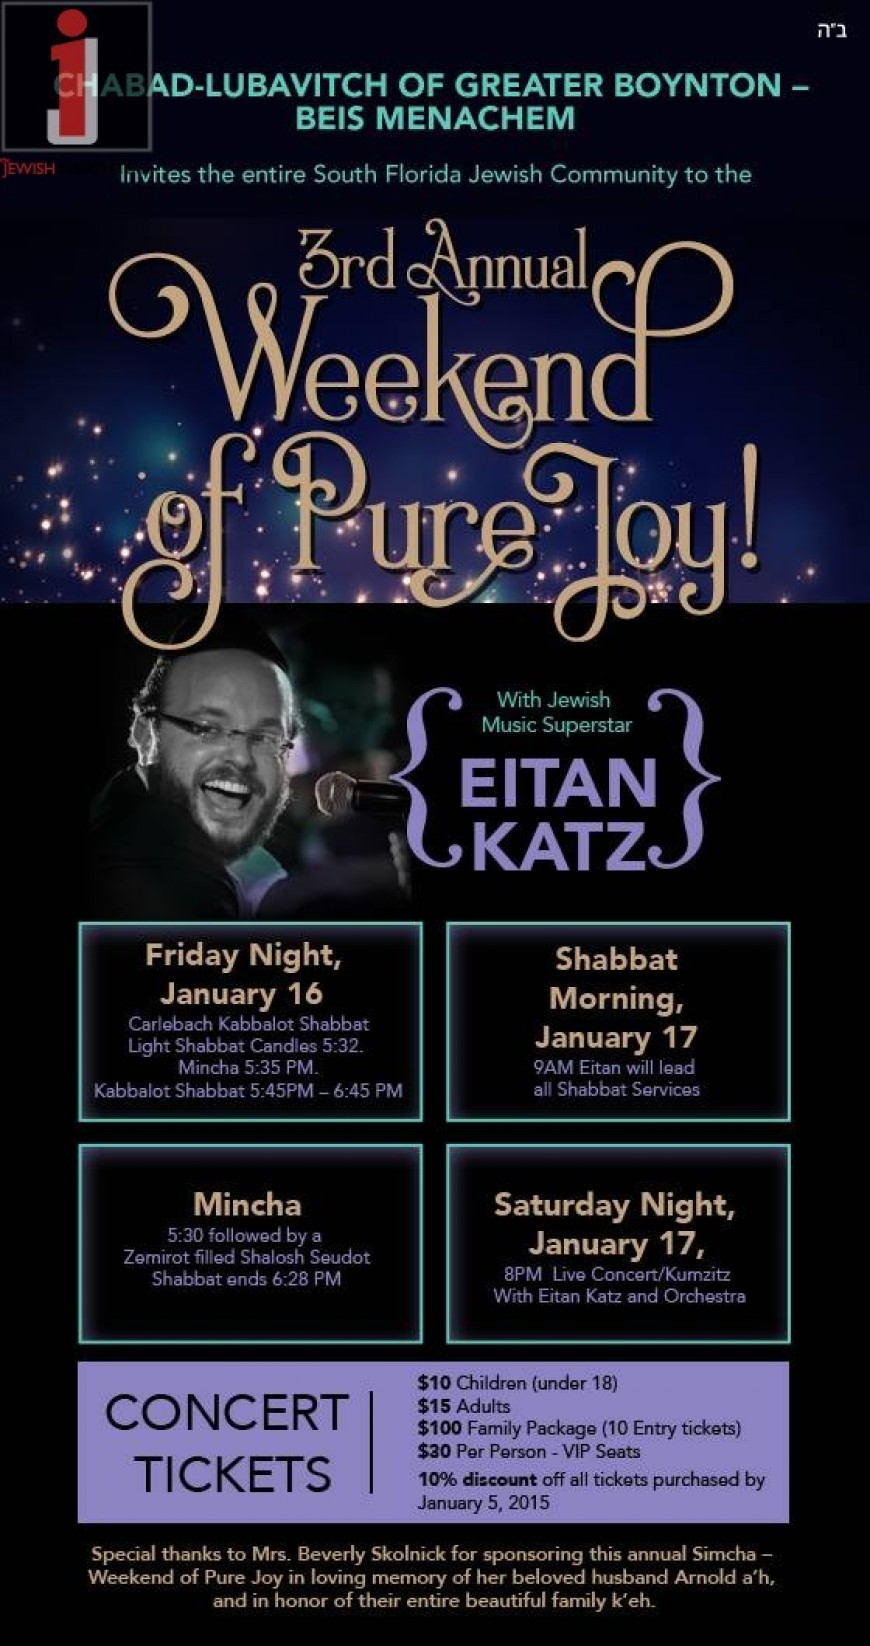 3rd Annual Weekend of Pure Joy with Eitan Katz